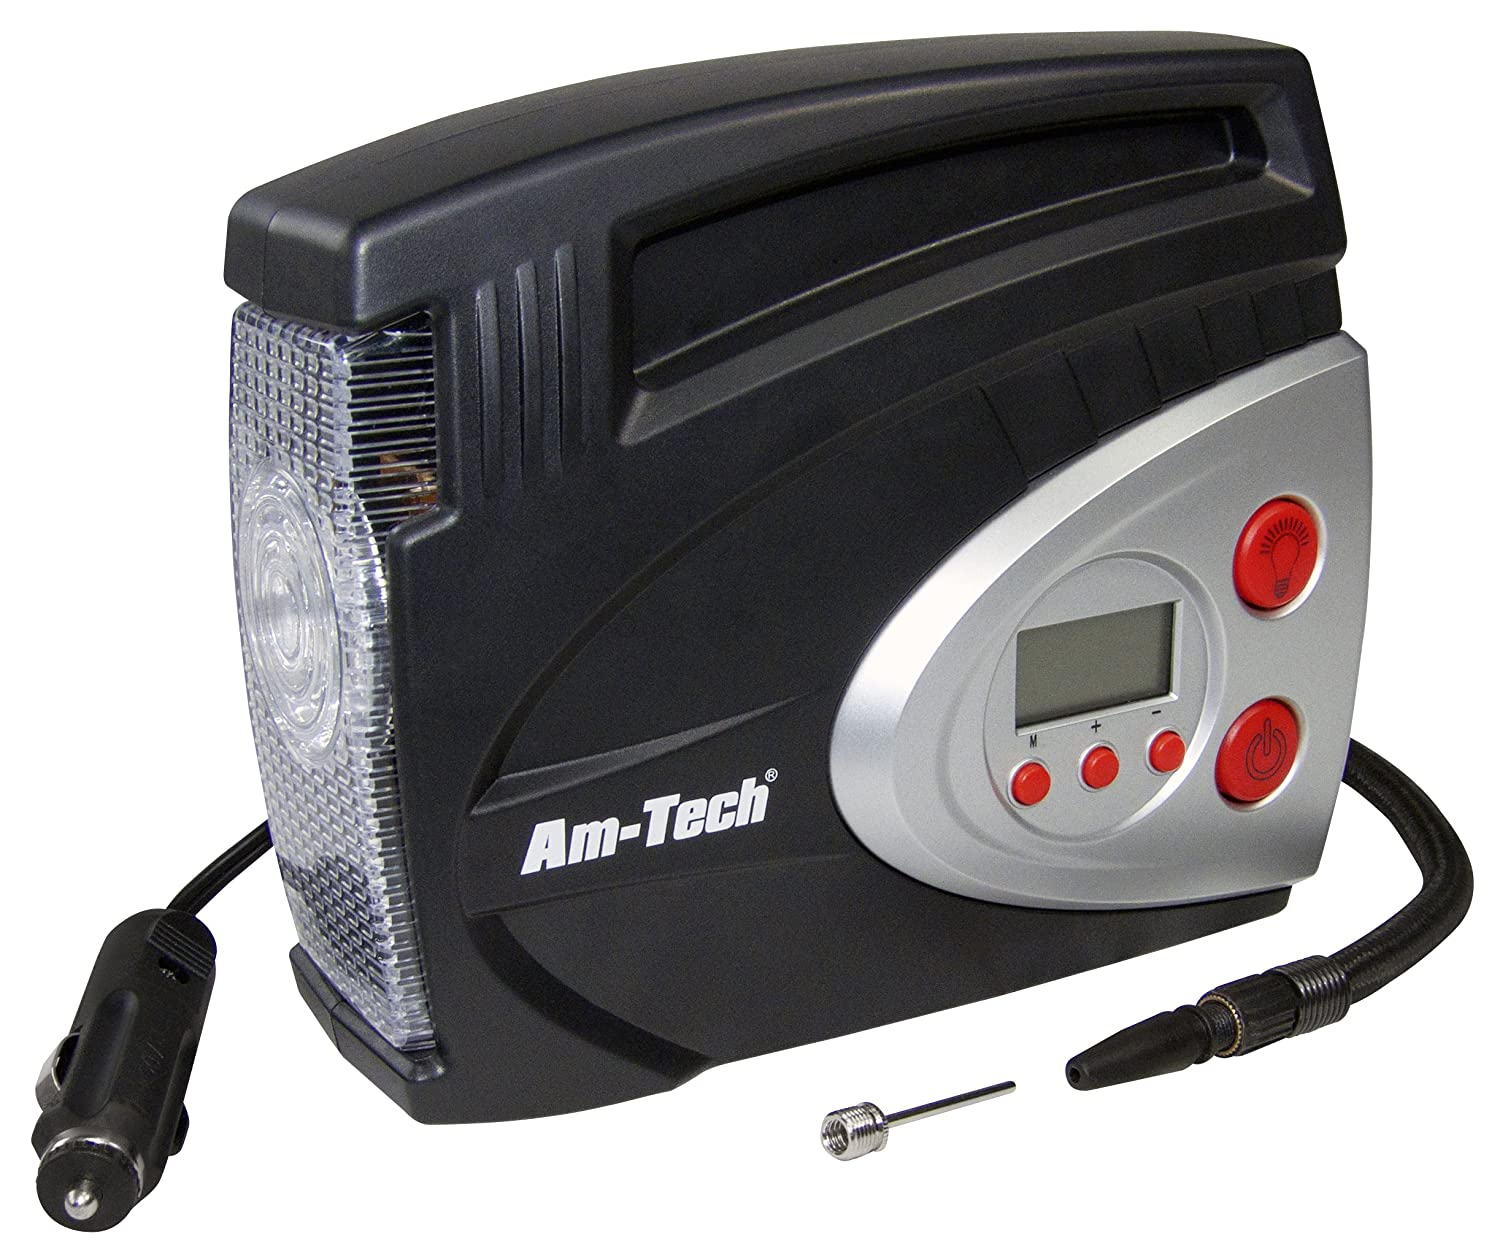 Am-Tech V1365 Digital Air Compressor